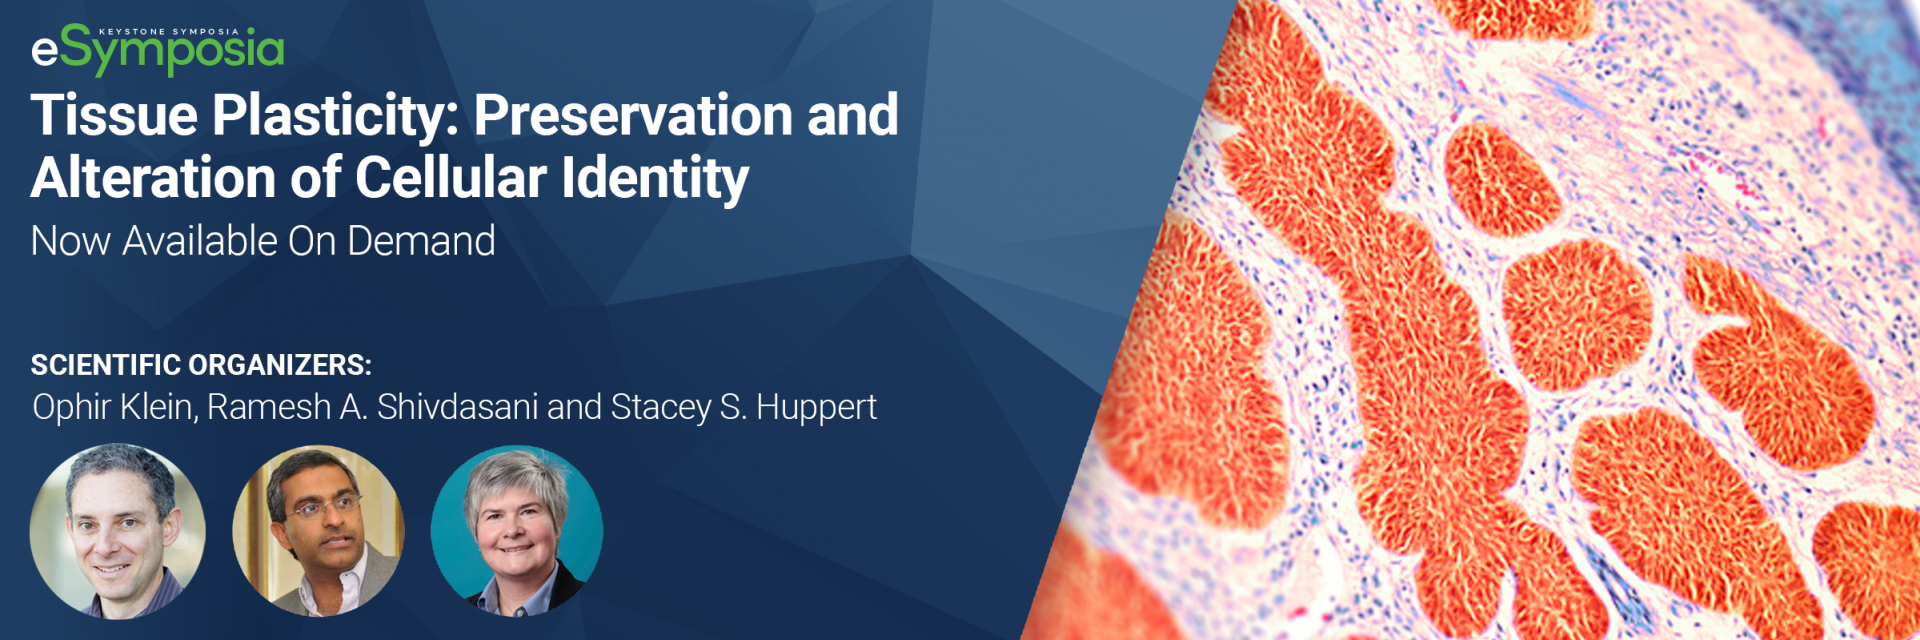 Tissue Plasticity: Preservation and Alteration of Cellular Identity